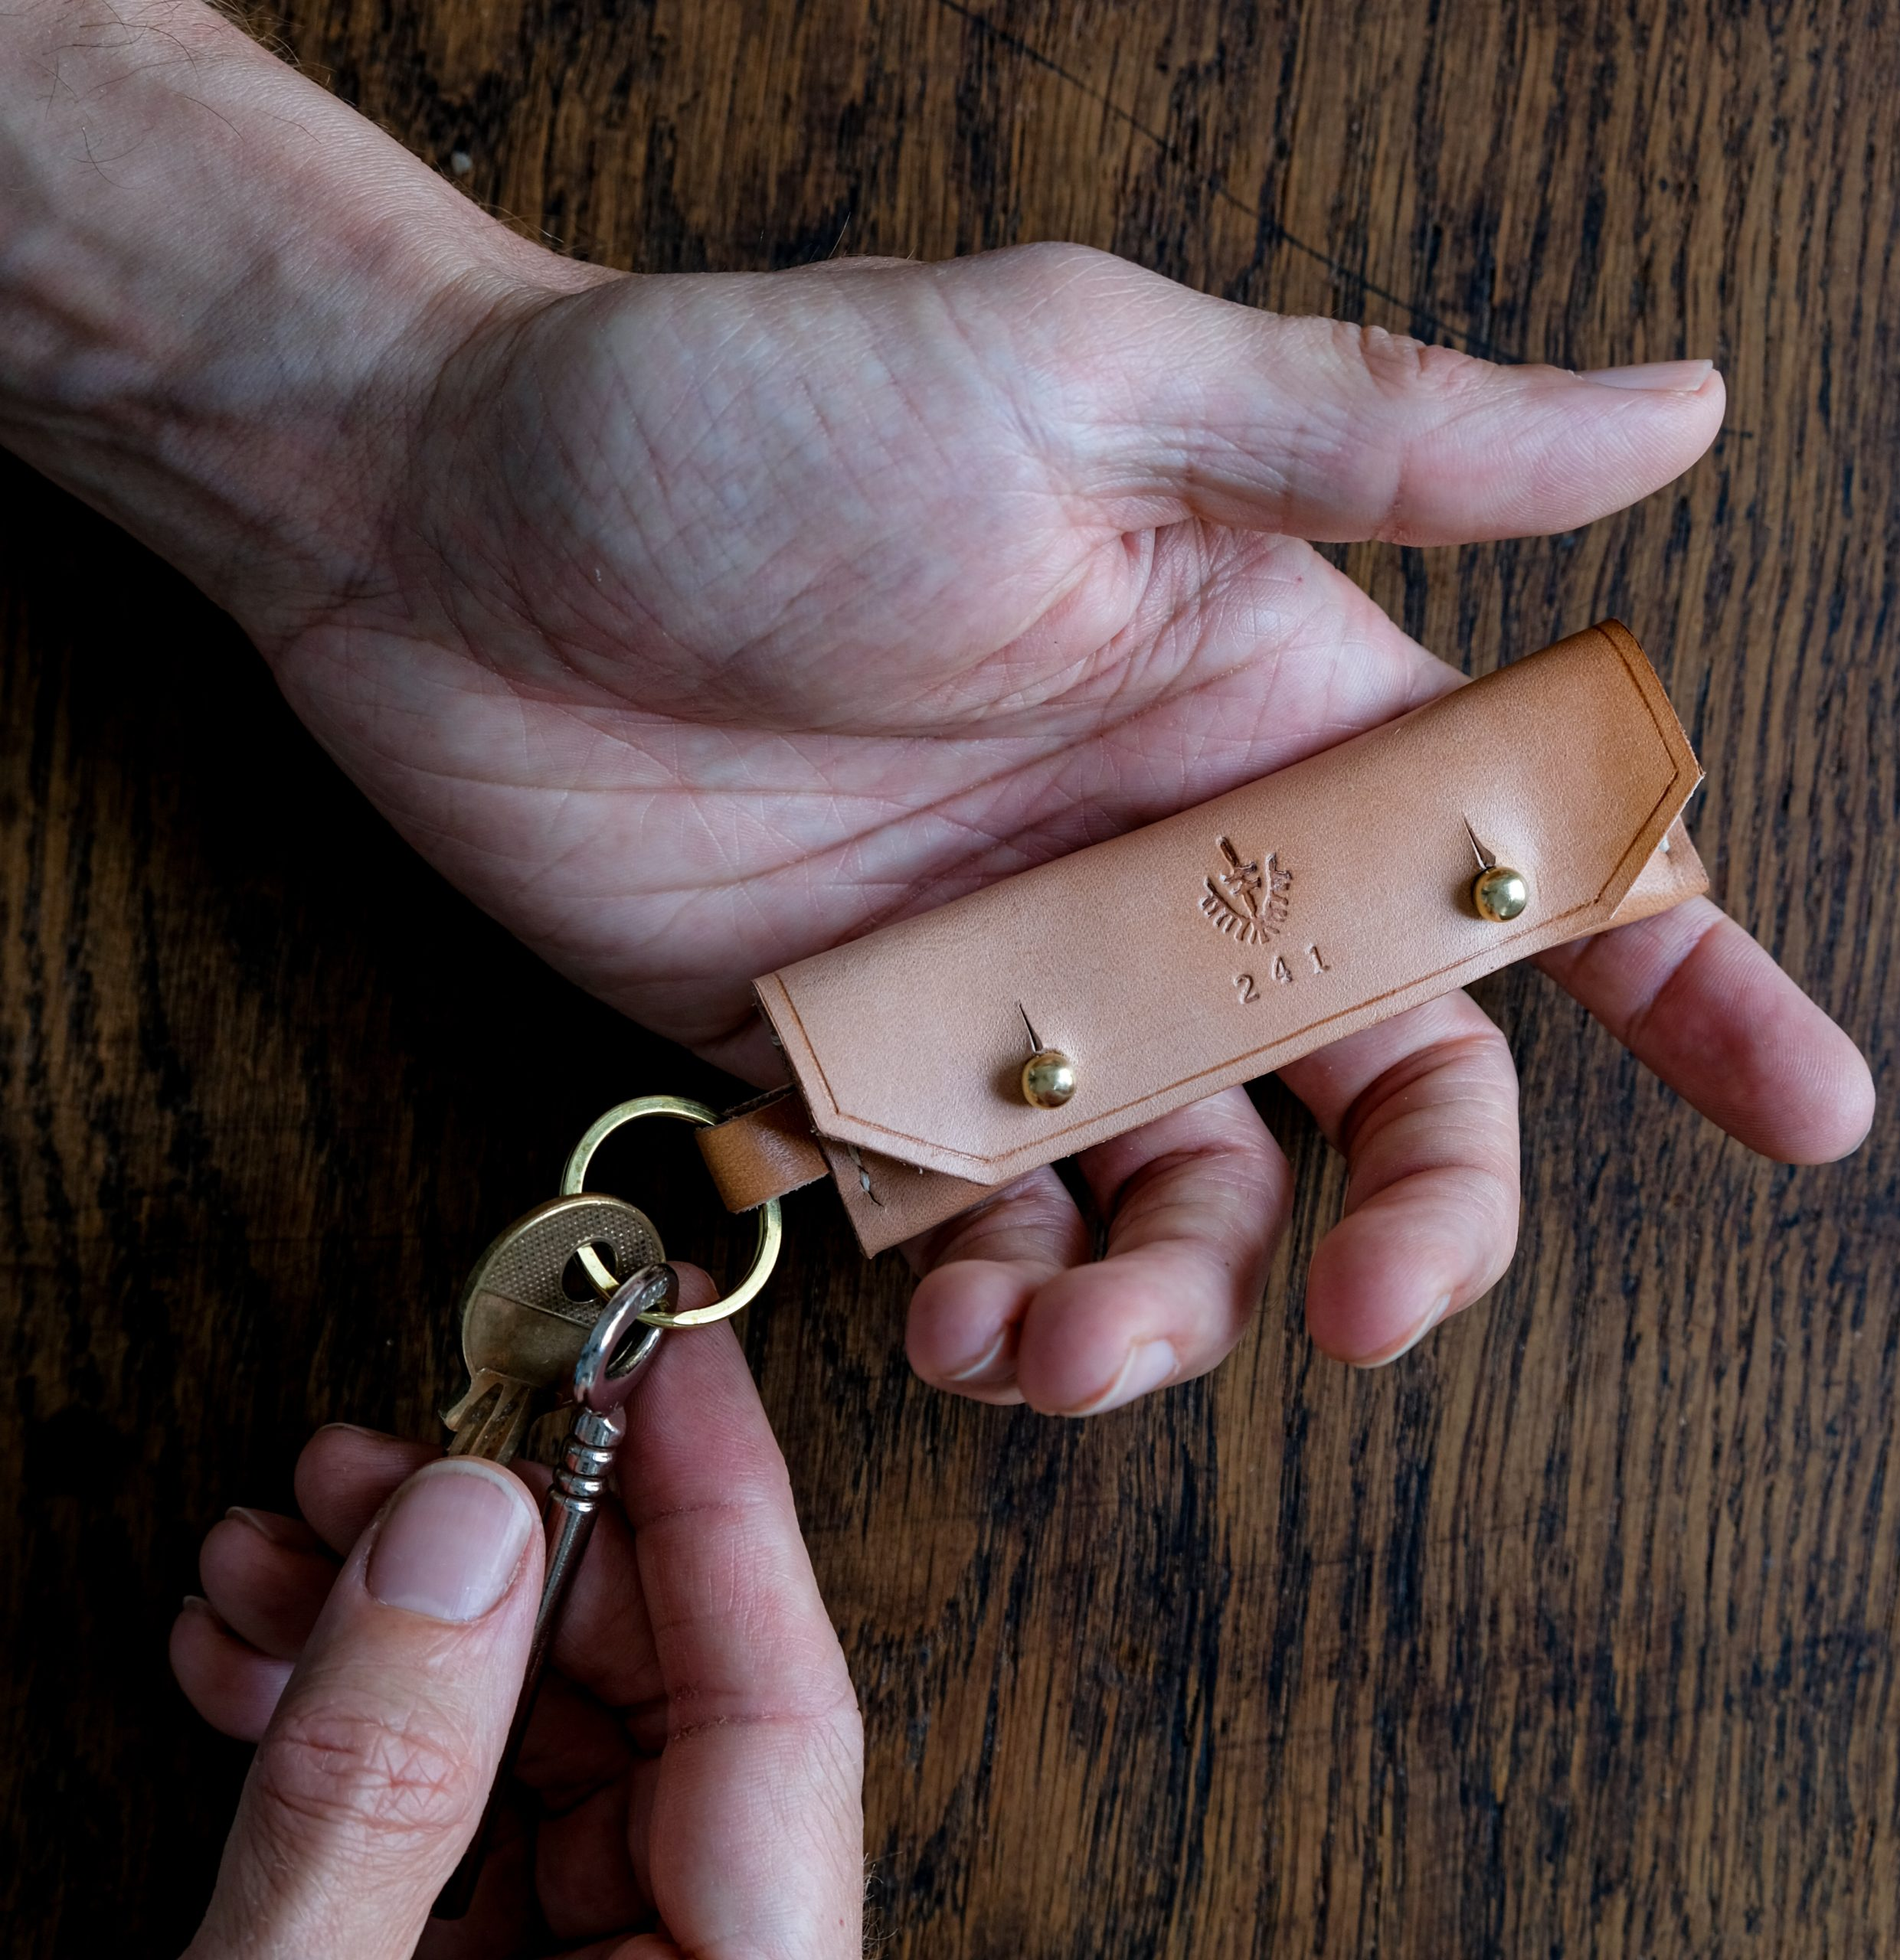 lerif designs leather gum stick coin holder demo with hands on wood background